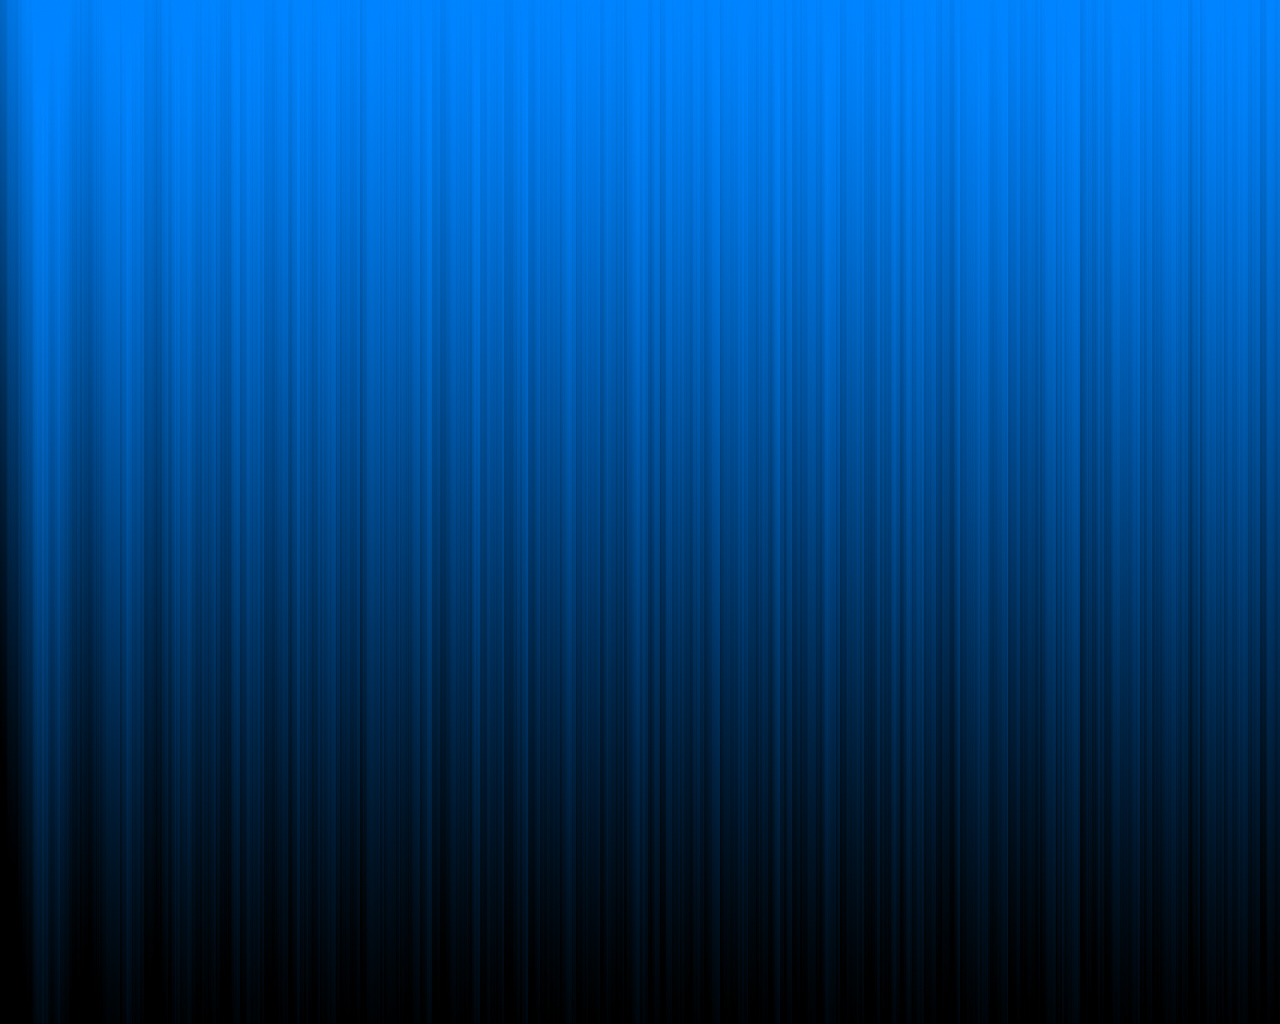 Cool wallpapers hd blue celebrated wallpaper for In wallpaper